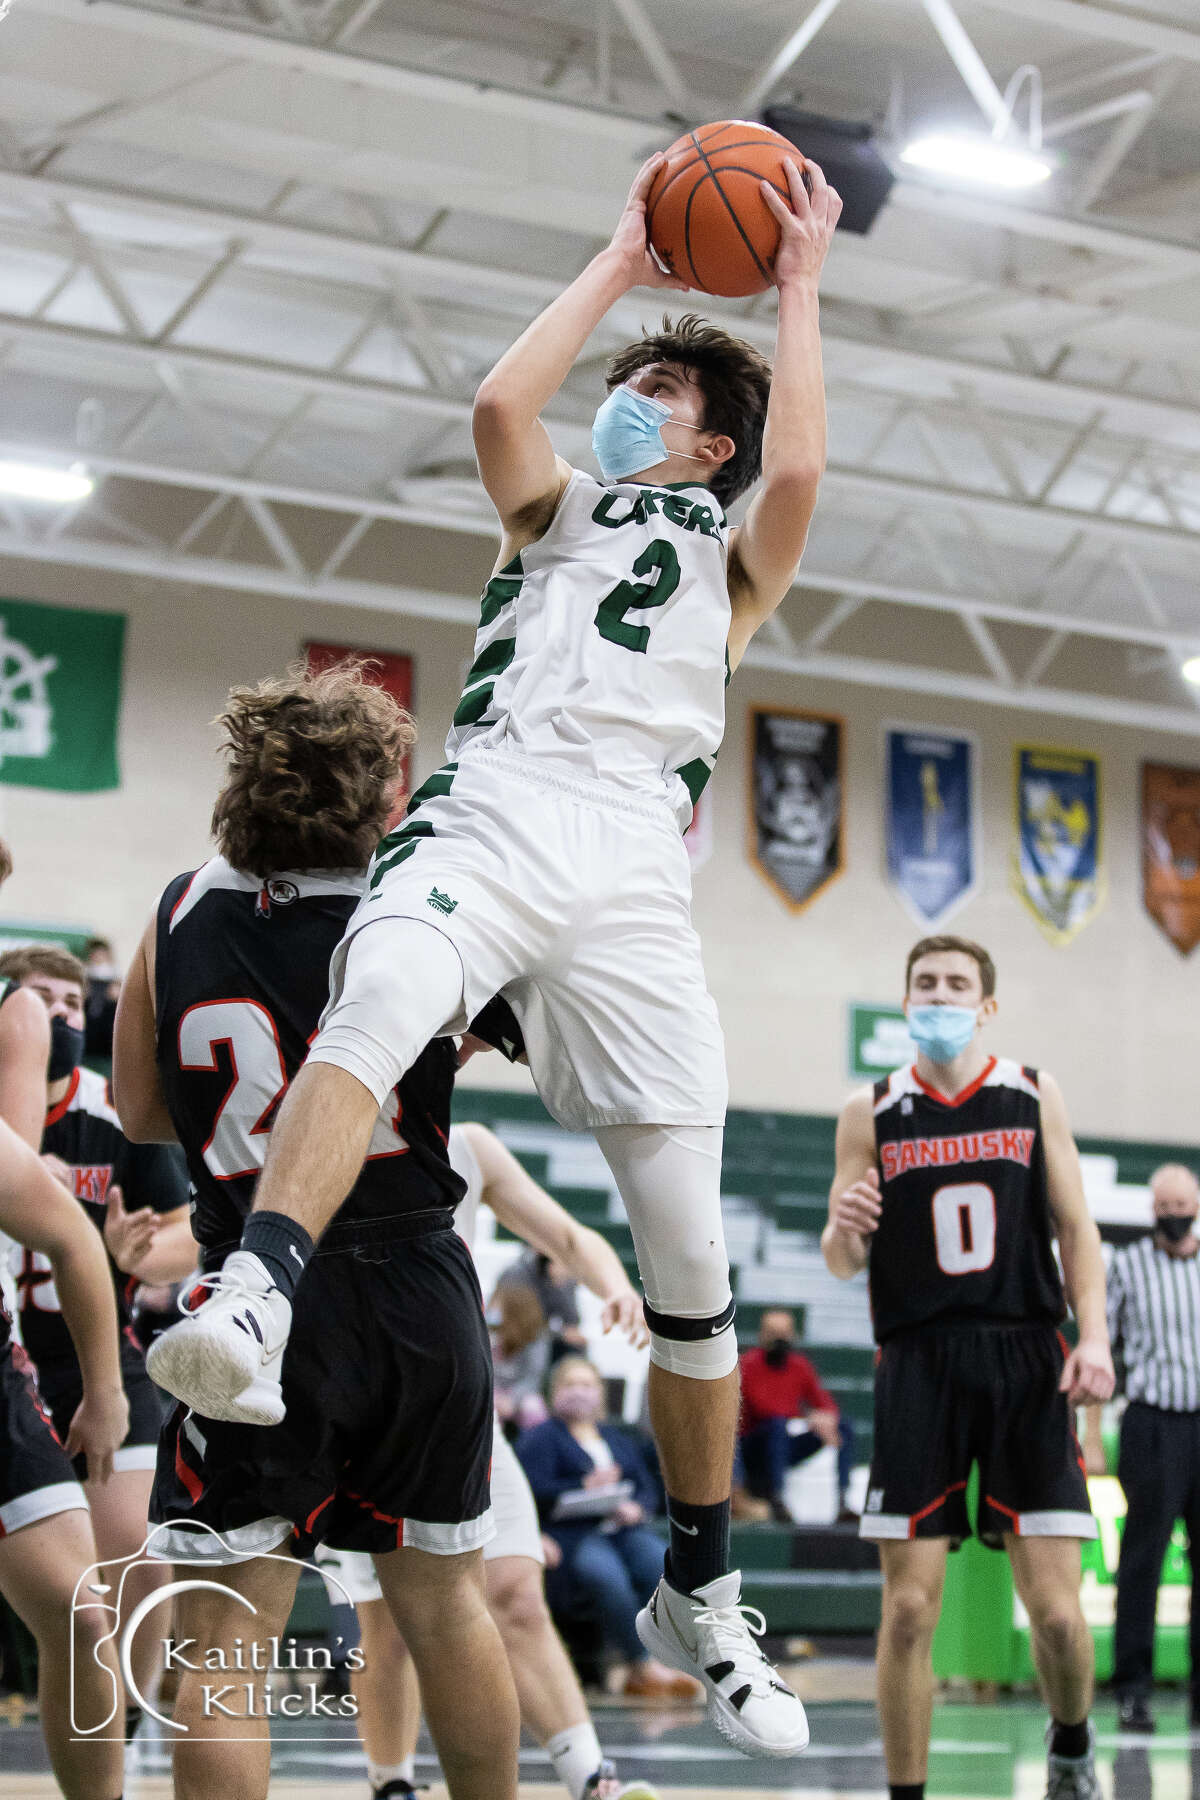 The Laker varsity boys basketball team opened the 2020-2021 season at home on Wednesday night with a 57-39 victory over the Sandusky Redskins.